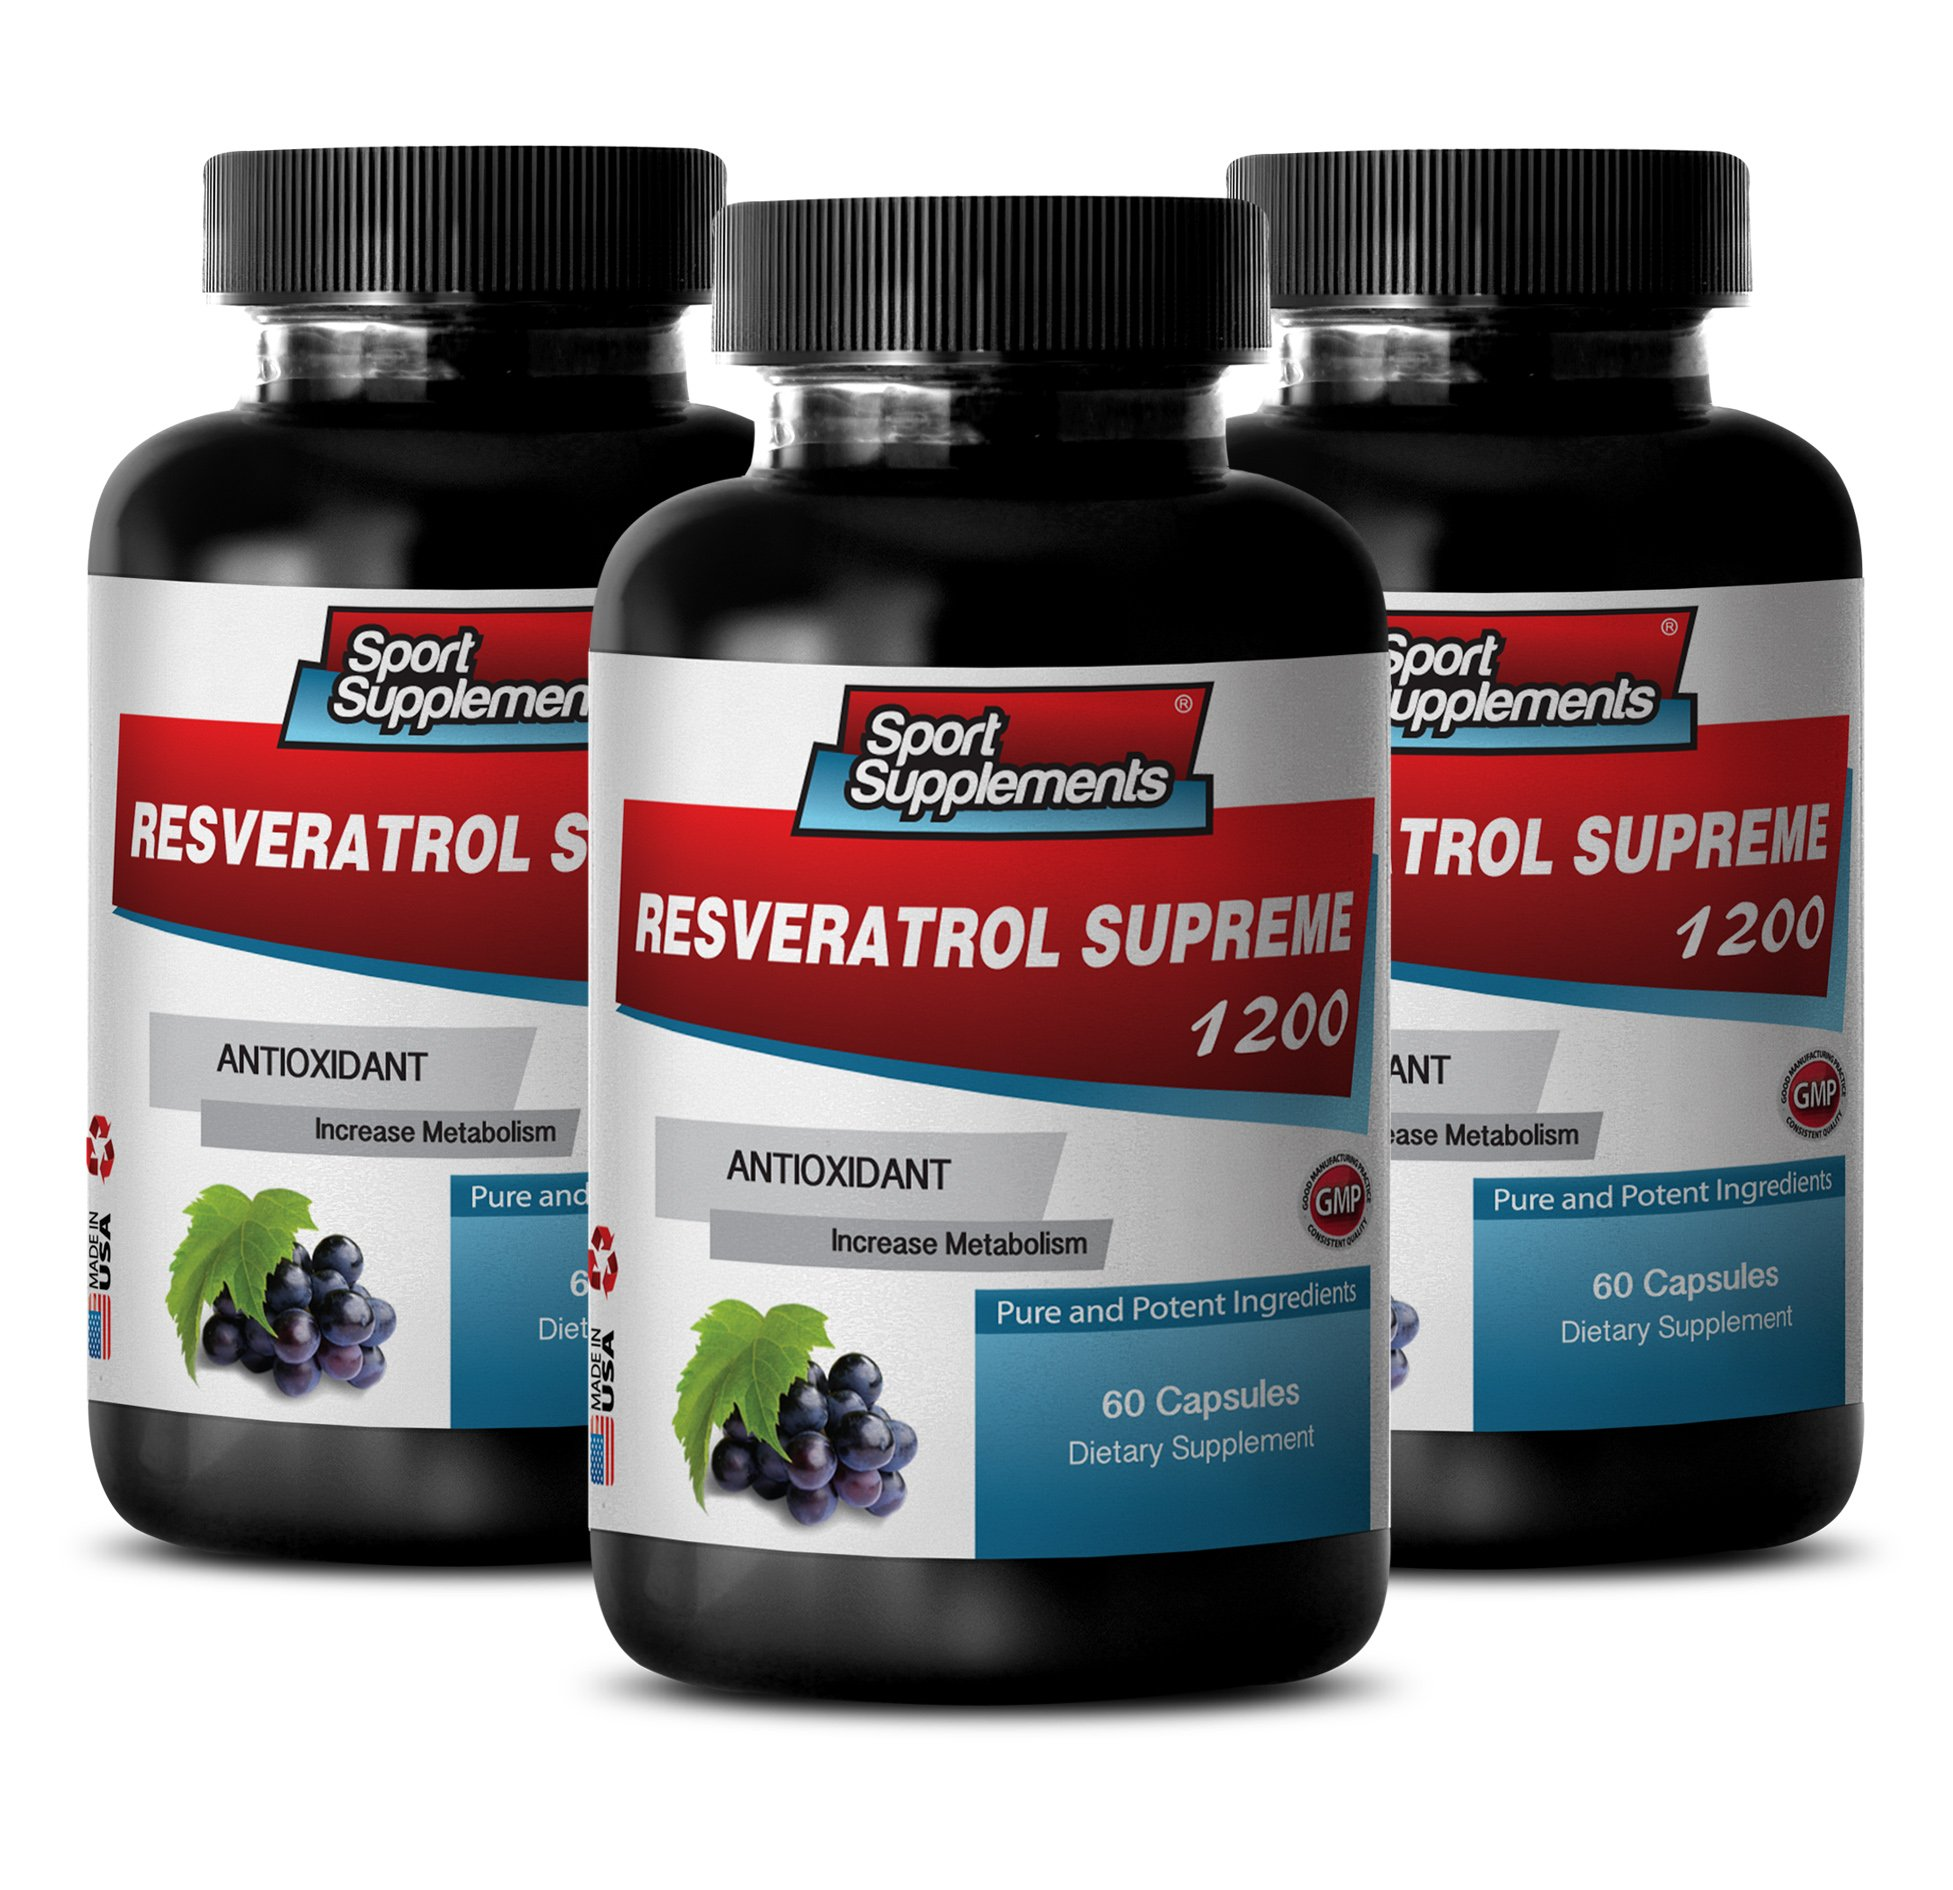 Antioxidant Healthy Blend 1200mg- Resveratrol Supreme - Maximum Strength - Red Wine Pills (3 Bottles, 180 Capsules) by Sport Supplements (Image #1)